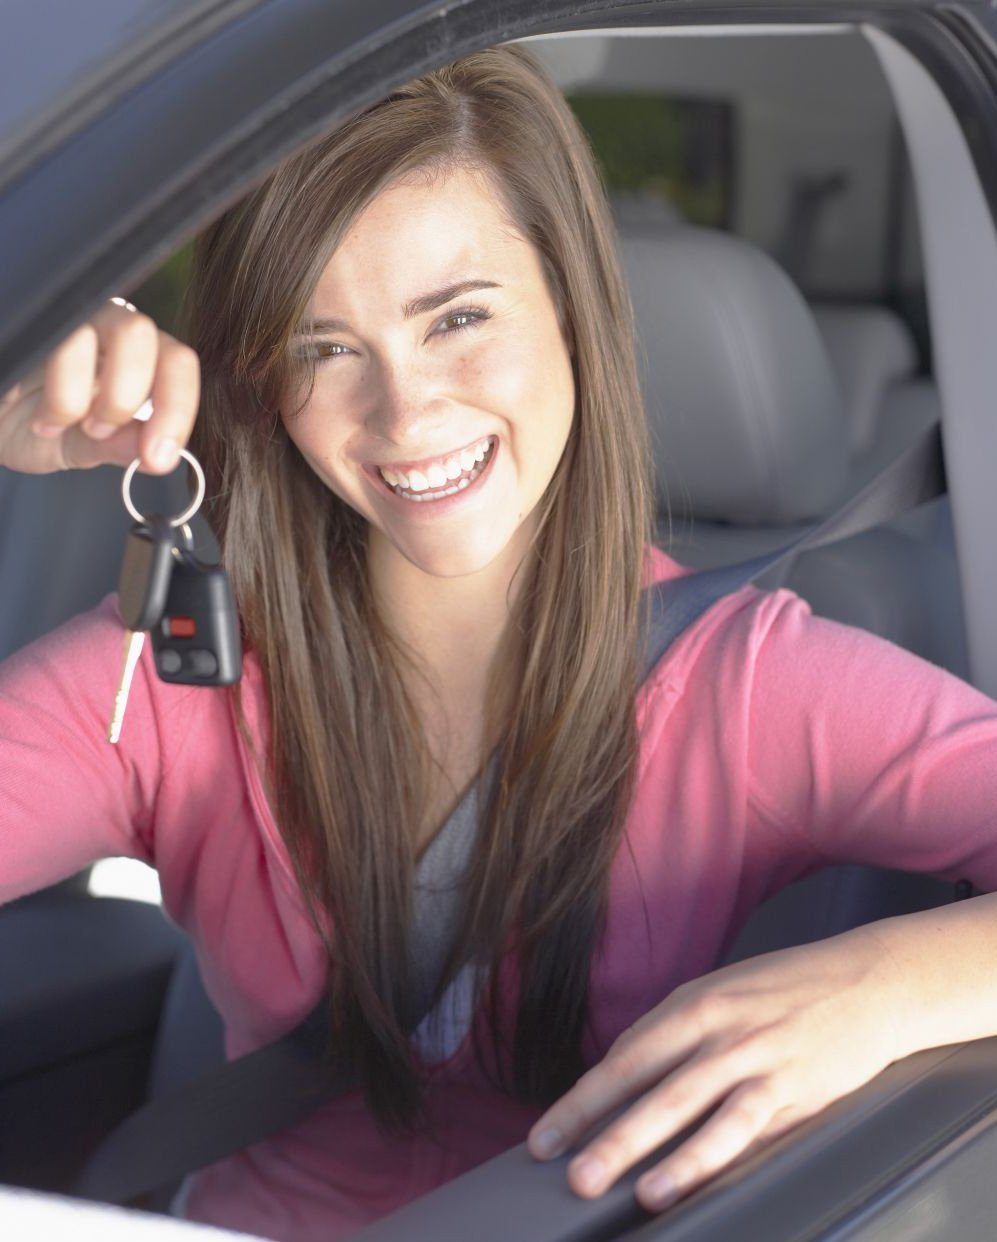 Another driving school success story in Rochester, NY